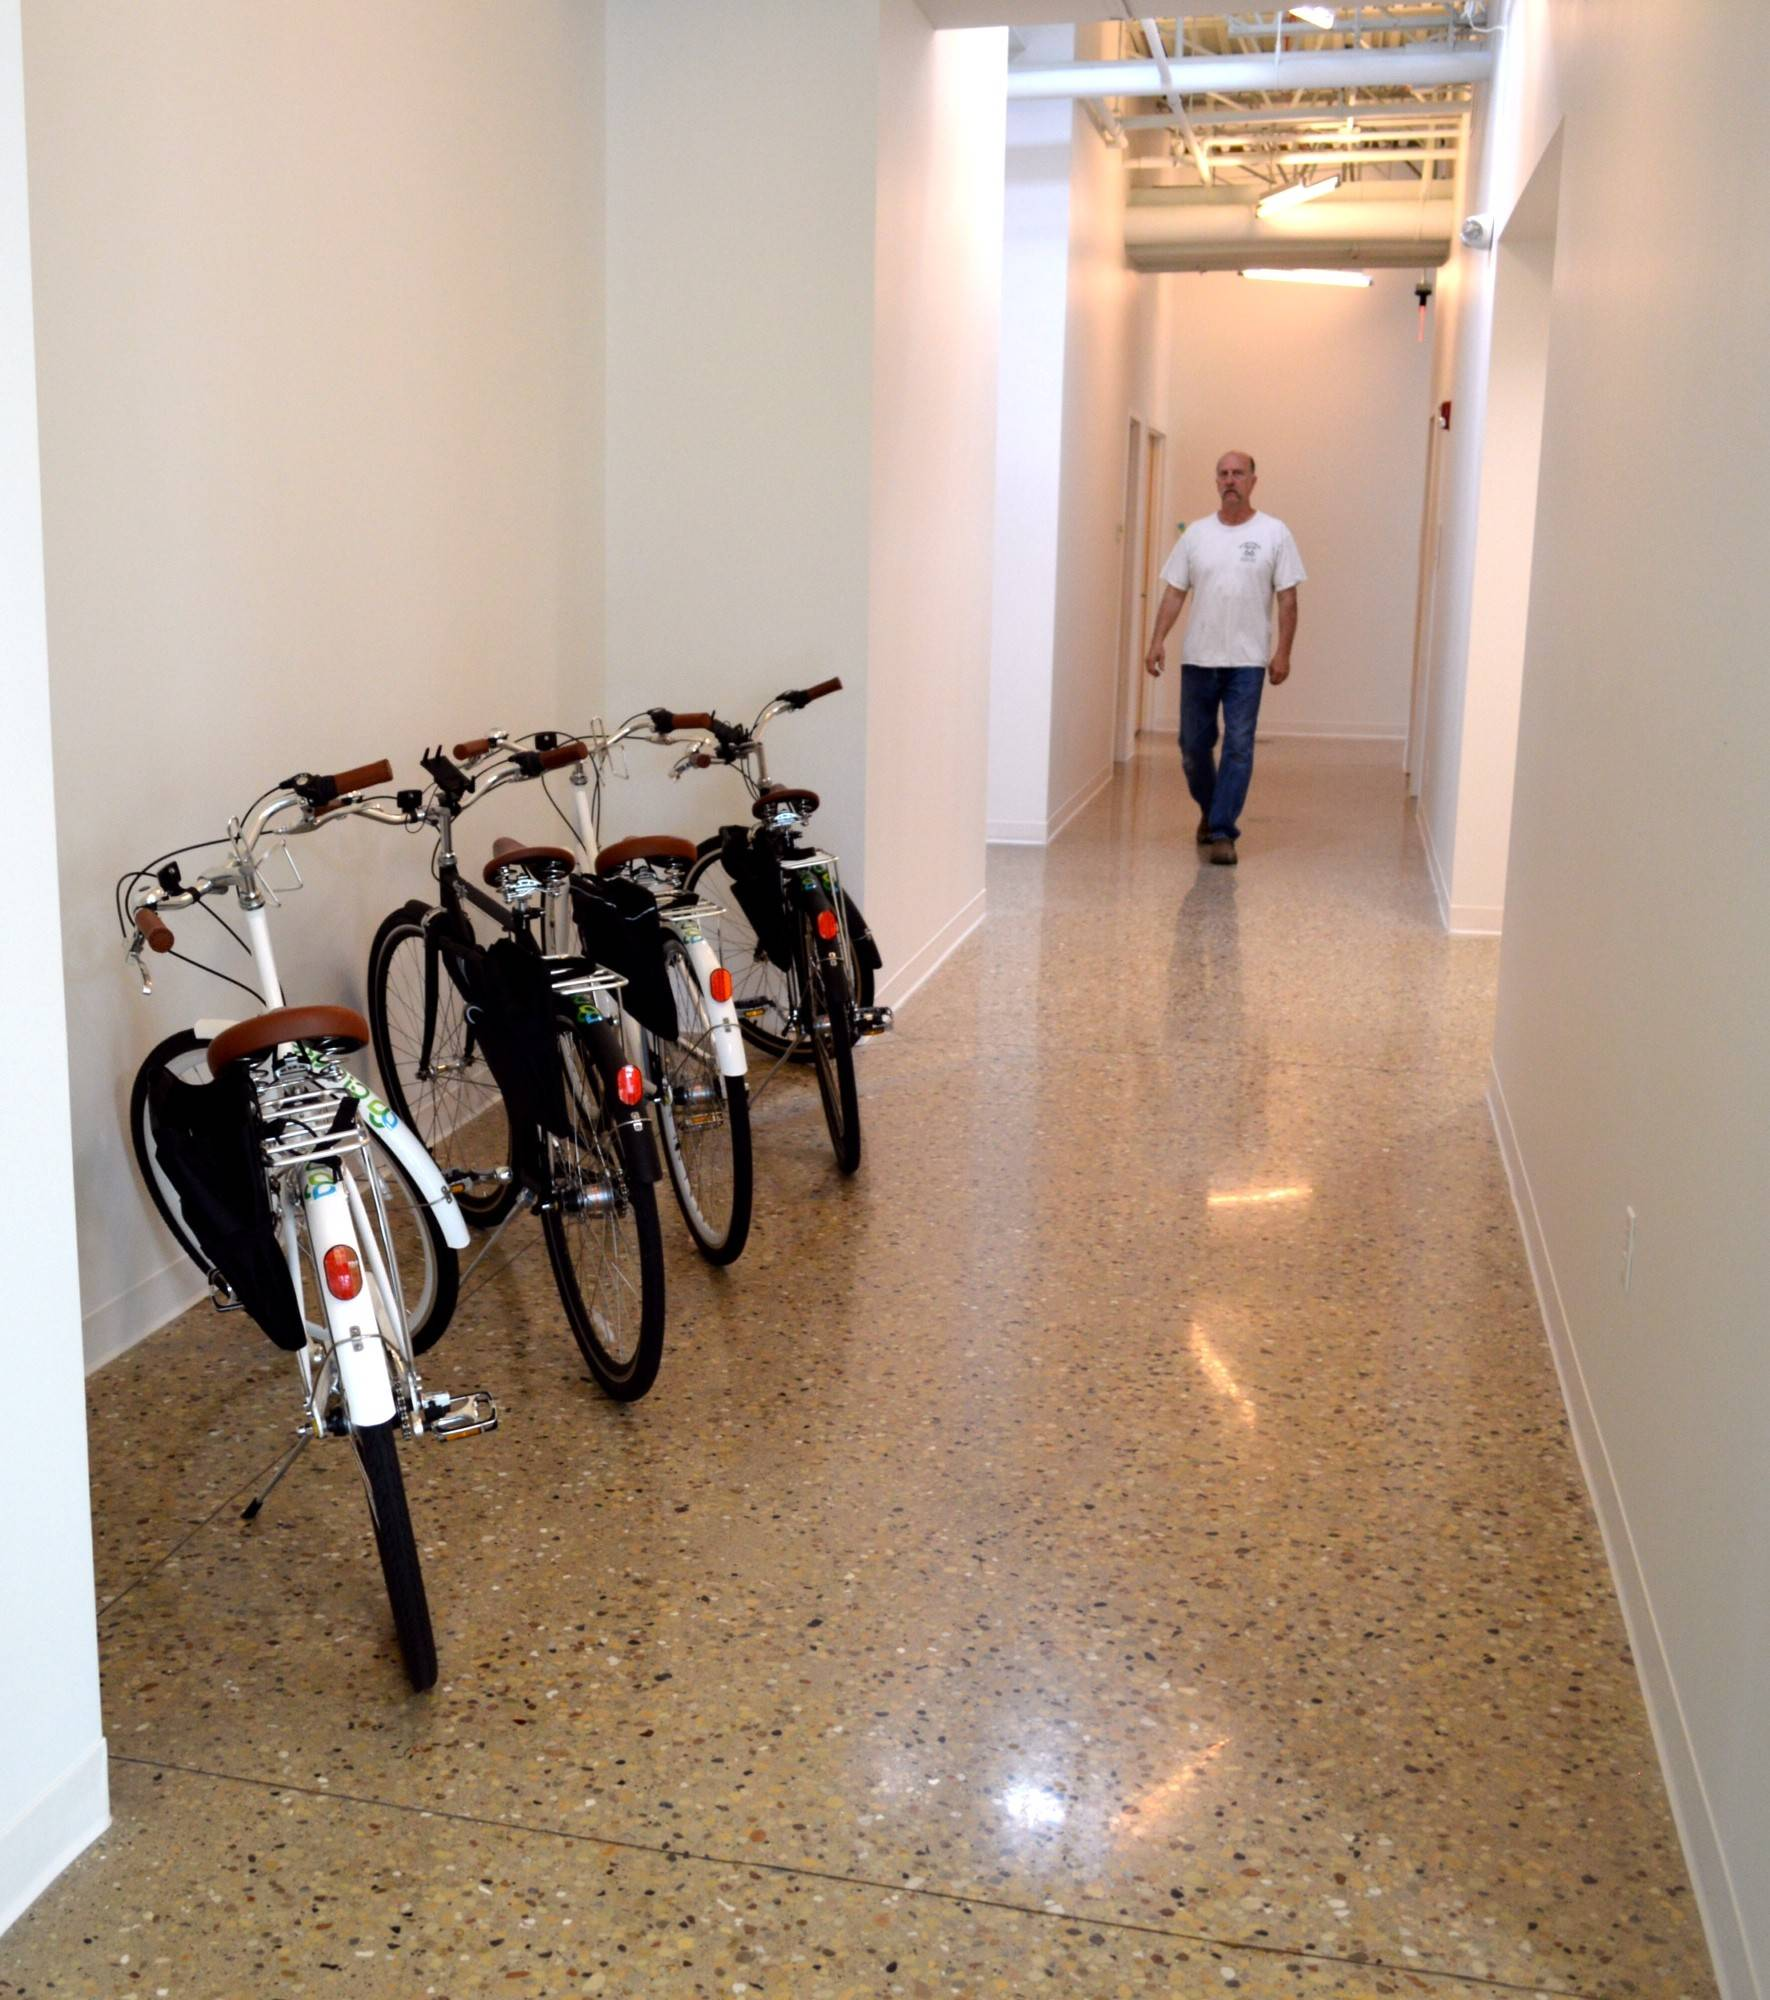 Bikes are available for employees to use for commuting to and from nearby restaurants during their lunch breaks.